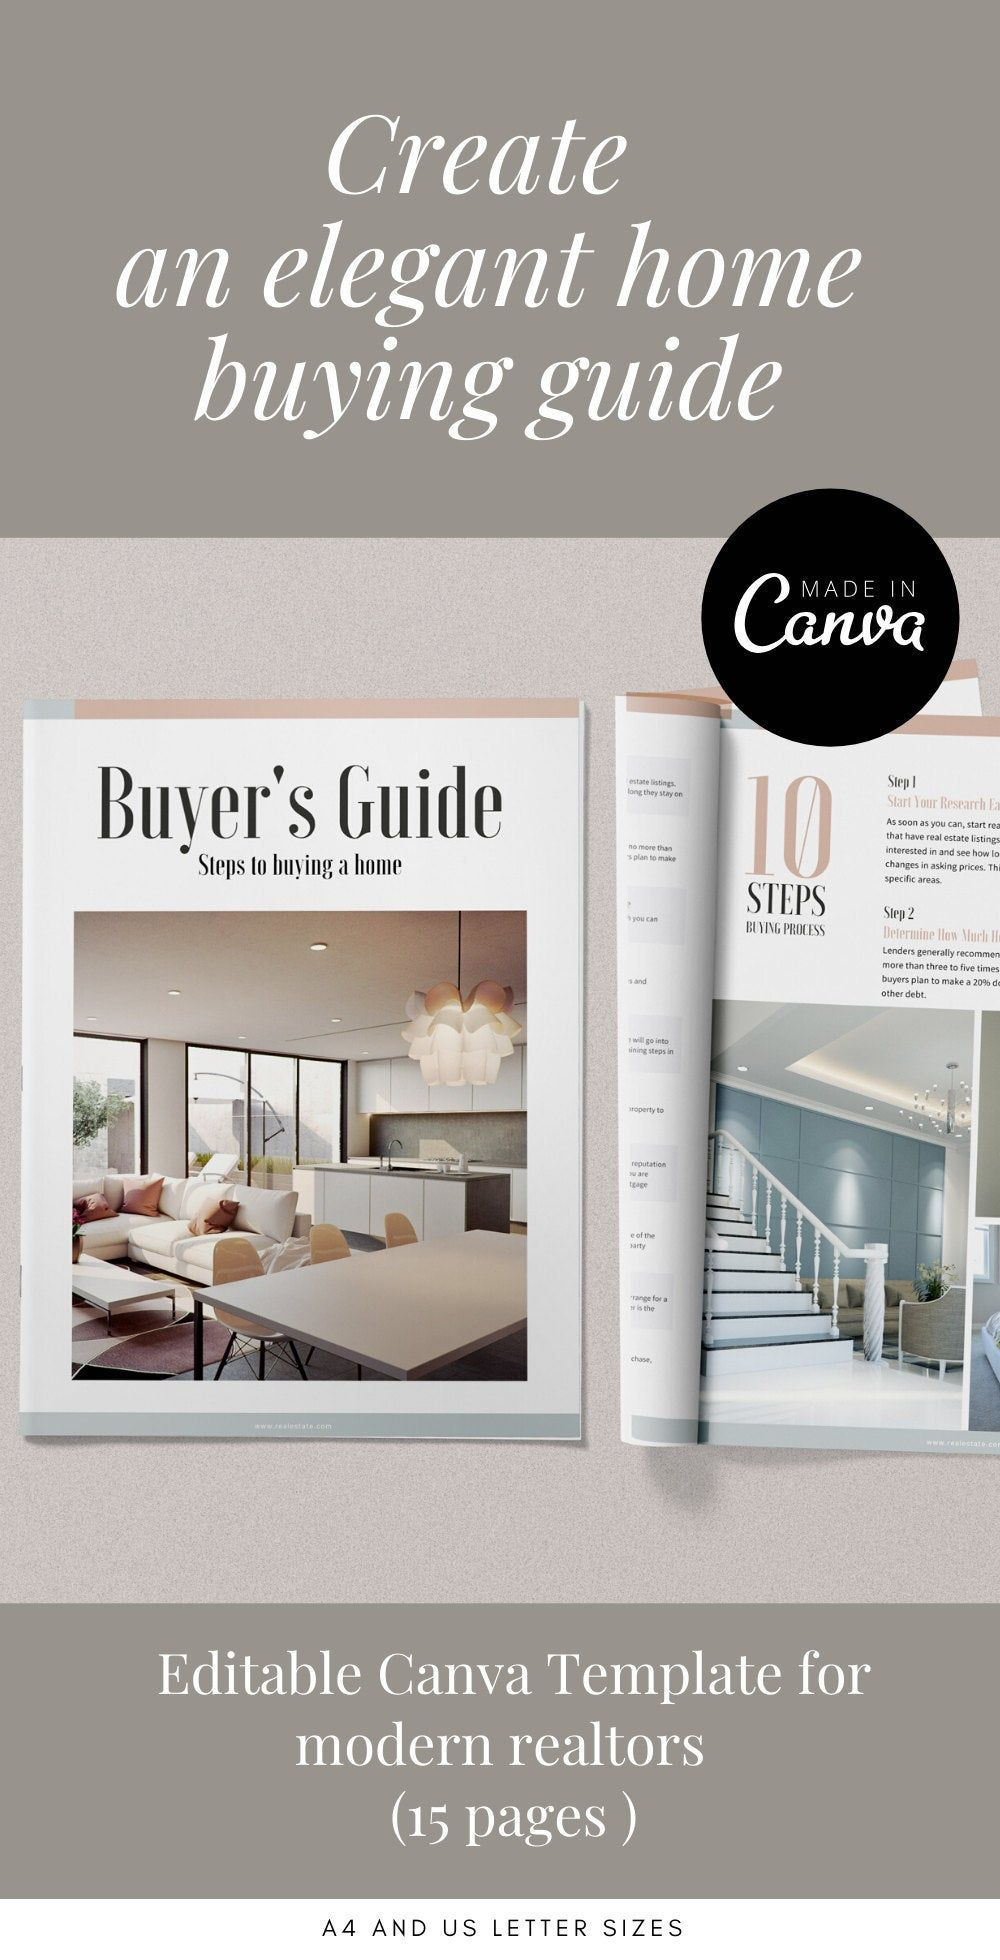 Buyers Guide Template, Real Estate Presentation, Canva editable template, Buyer Home Packet with Questionnaire, House Buying Guide